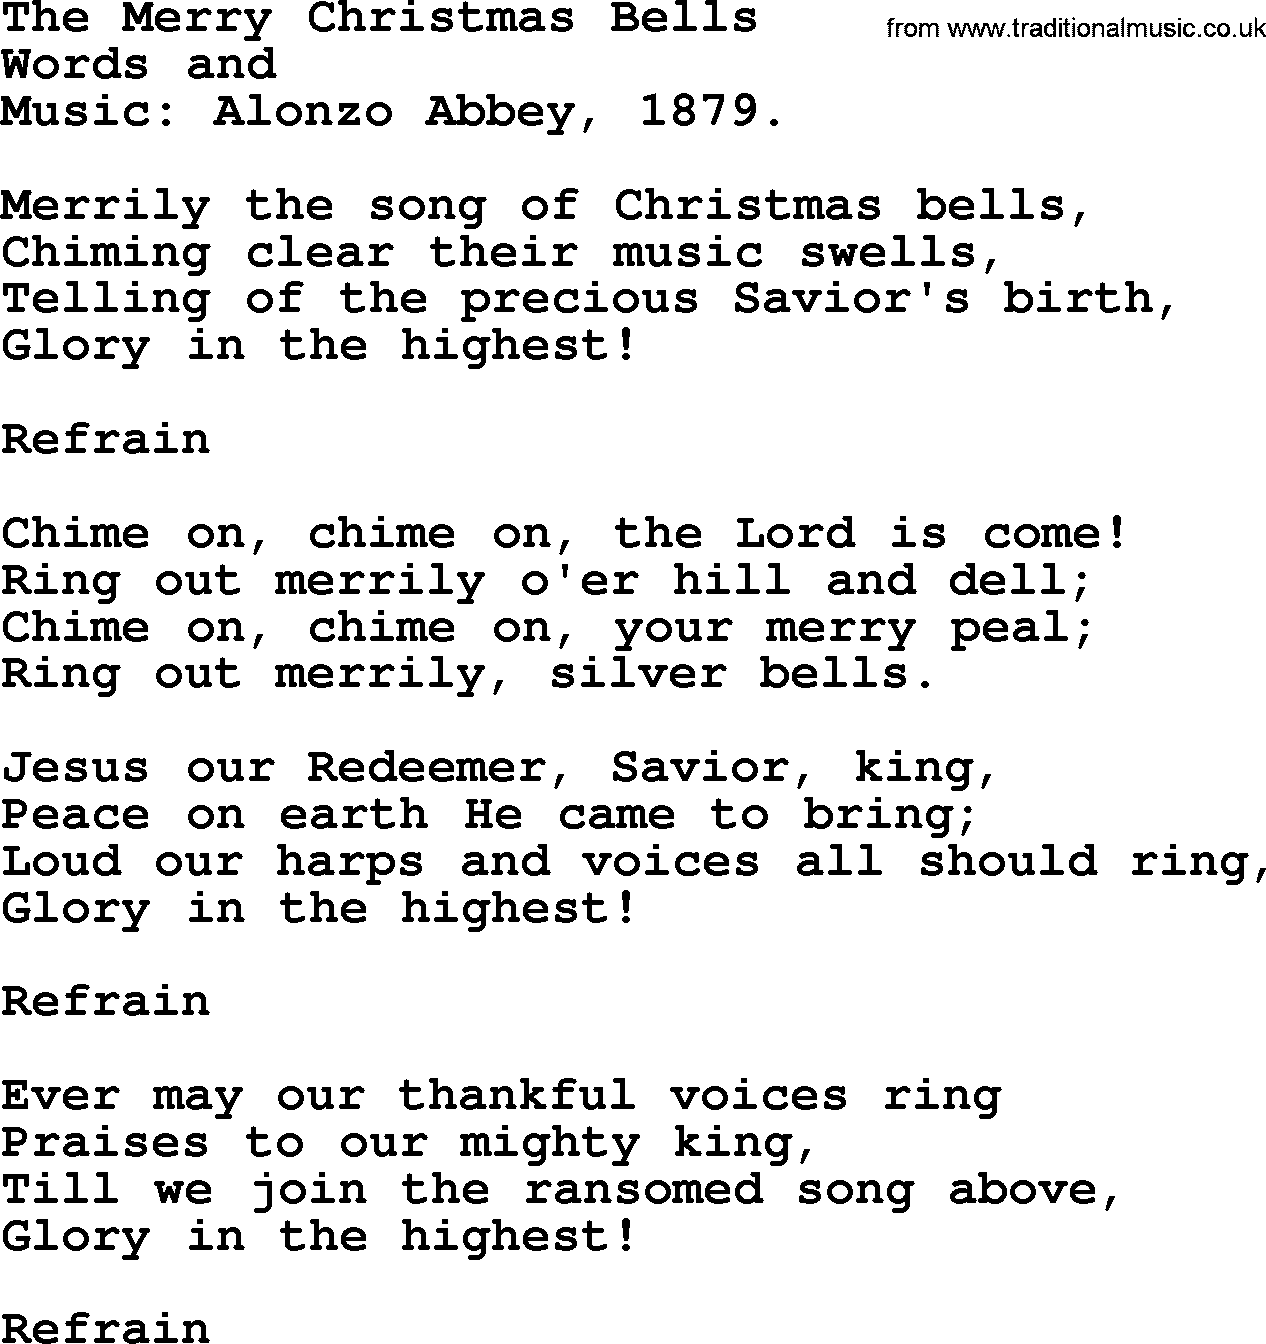 Christmas Hymns, Carols and Songs, title: The Merry Christmas Bells - complete lyrics, and PDF